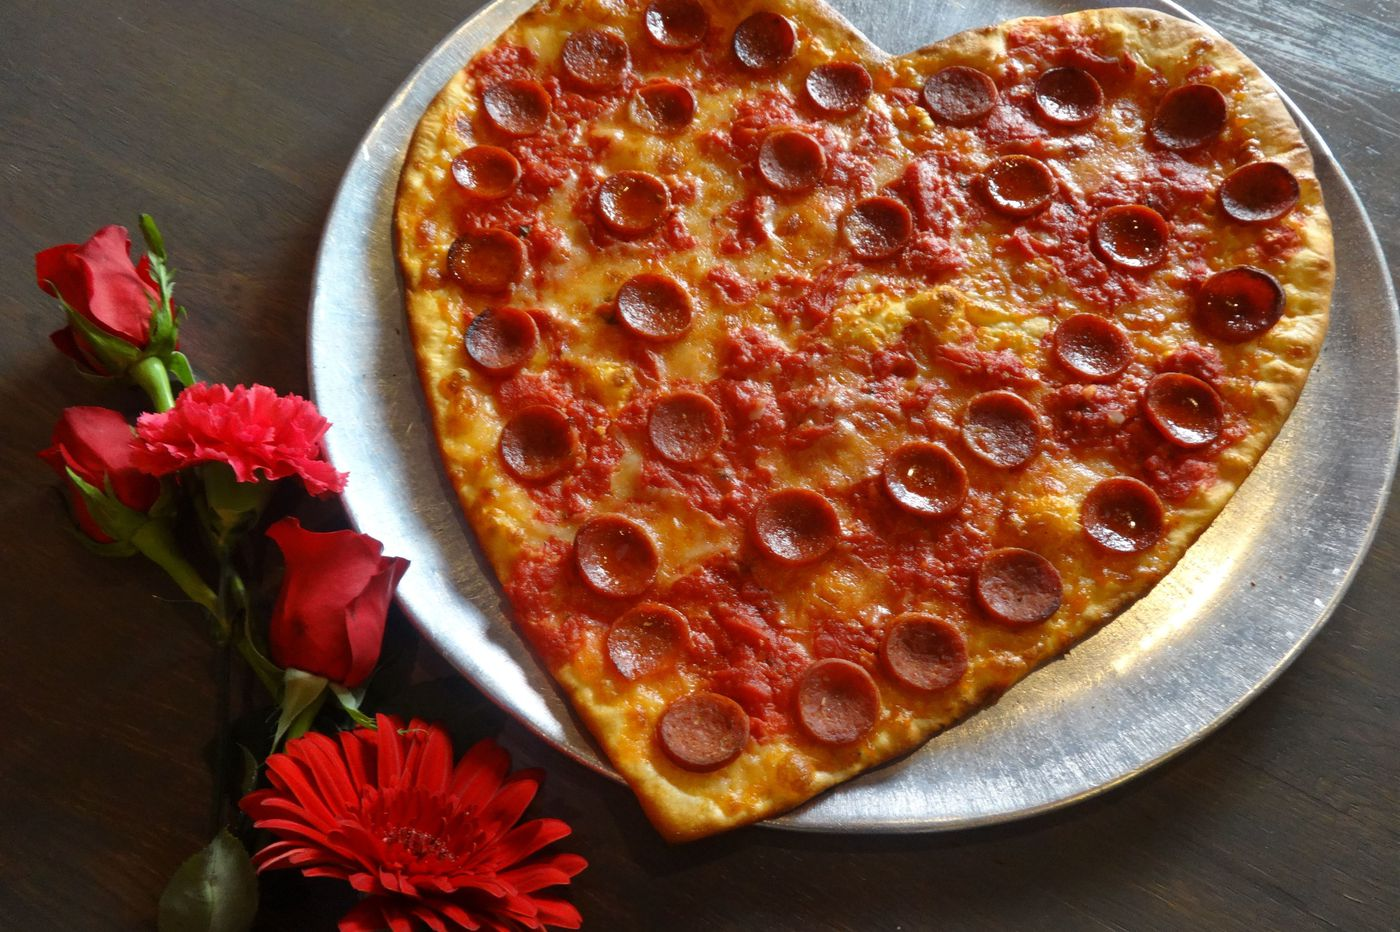 Have an anti-Valentine's Day tradition? Share it with us.